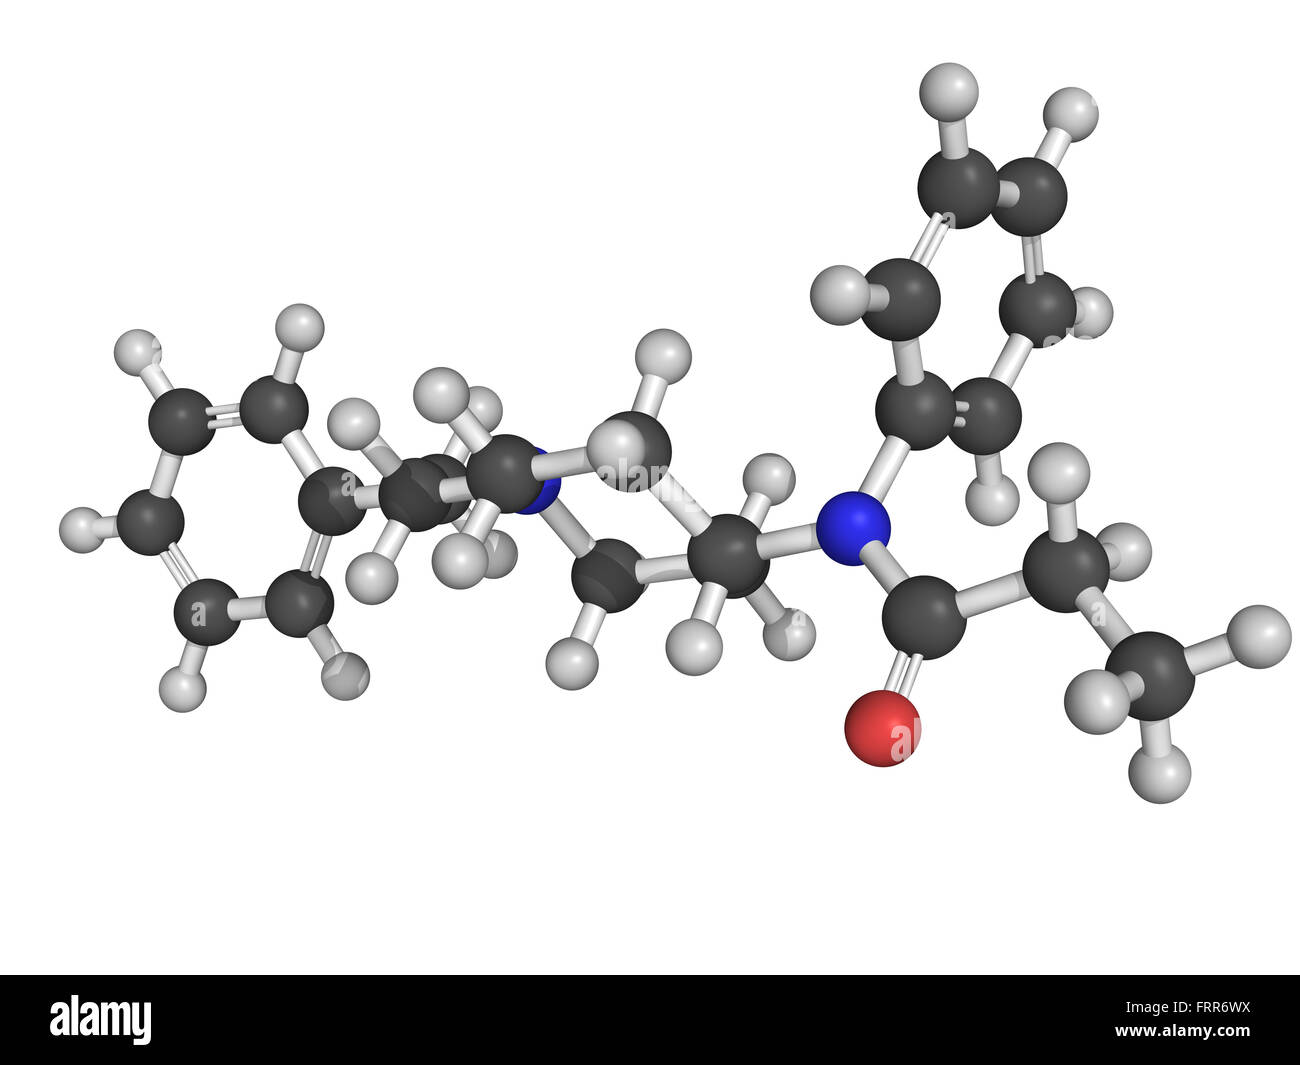 Chemical structure of fentanyl,  a potent and synthetic opioid analgesic with a rapid onset and short duration of - Stock Image